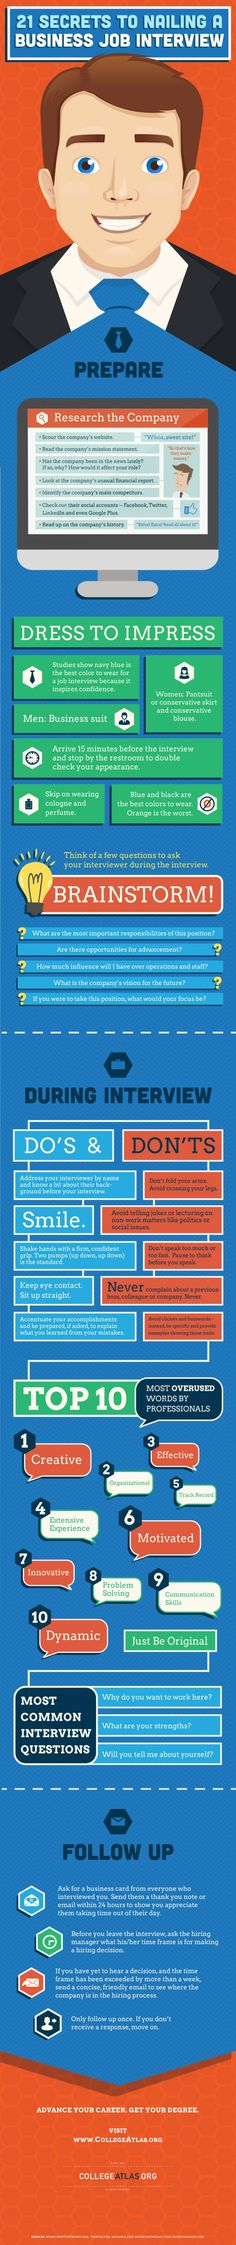 21 secrets to nailing your next job interview!